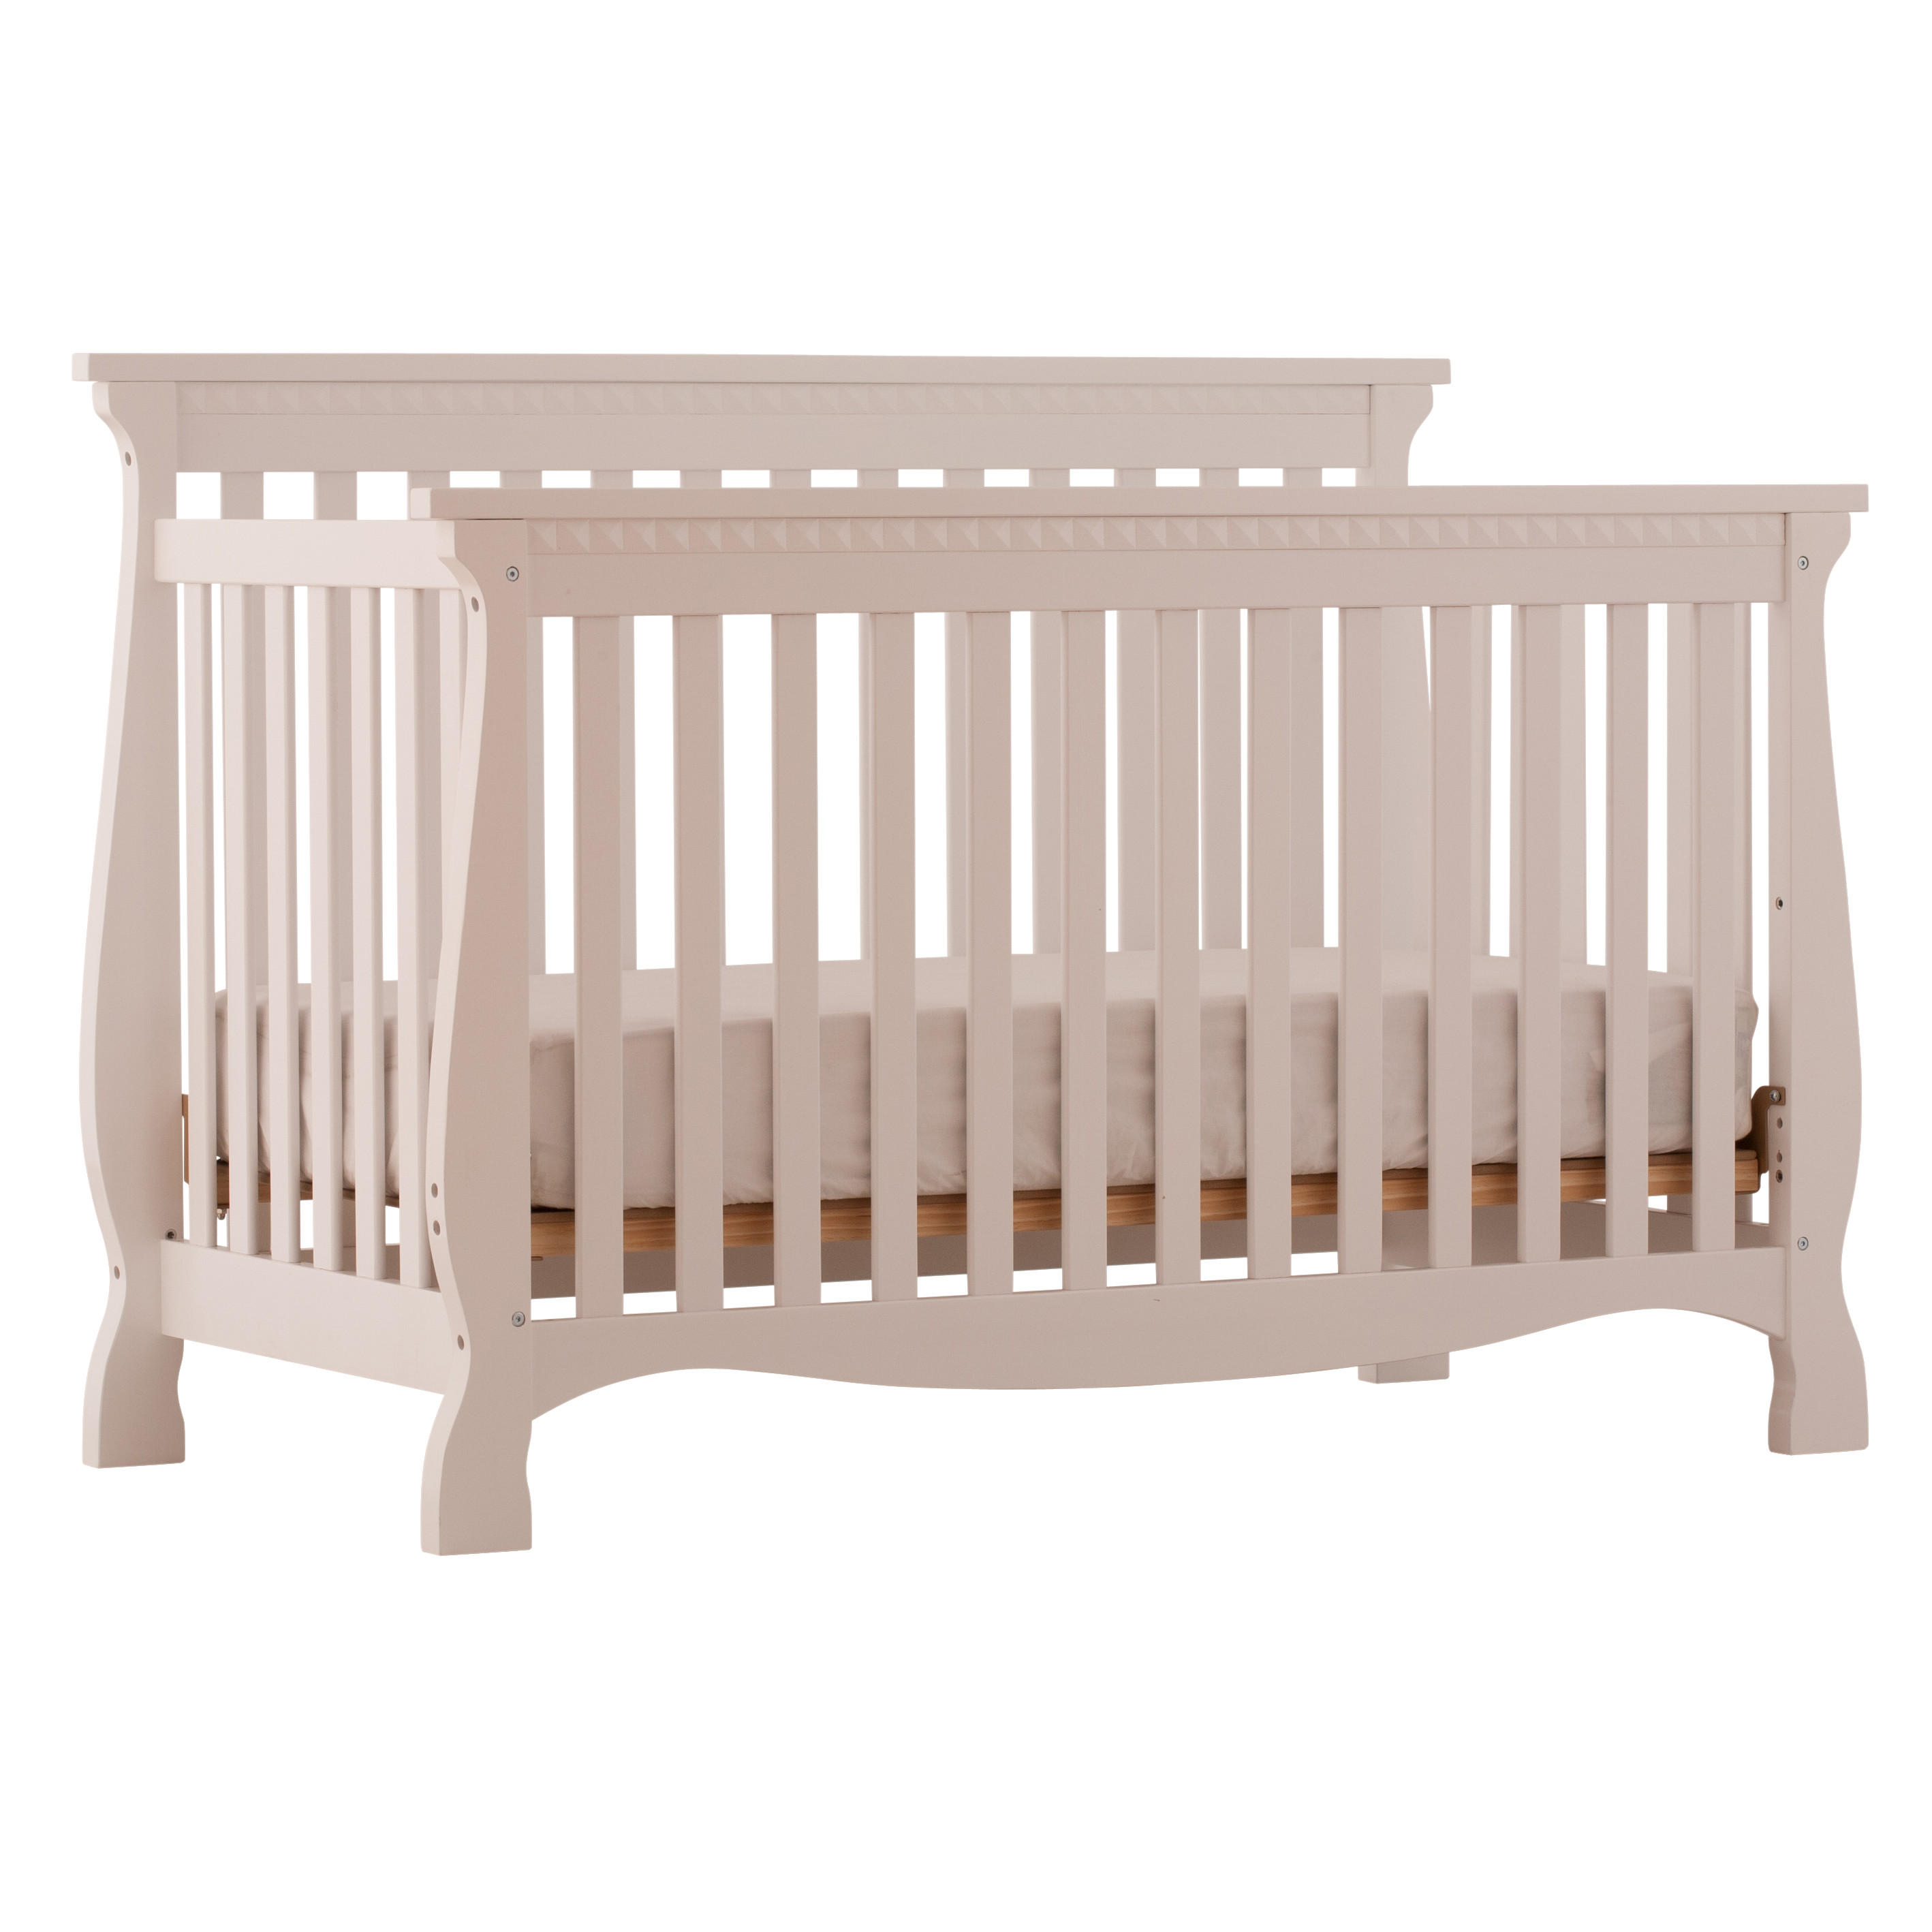 Venetian 4-in-1 Convertible Crib+Free Graco Mattress